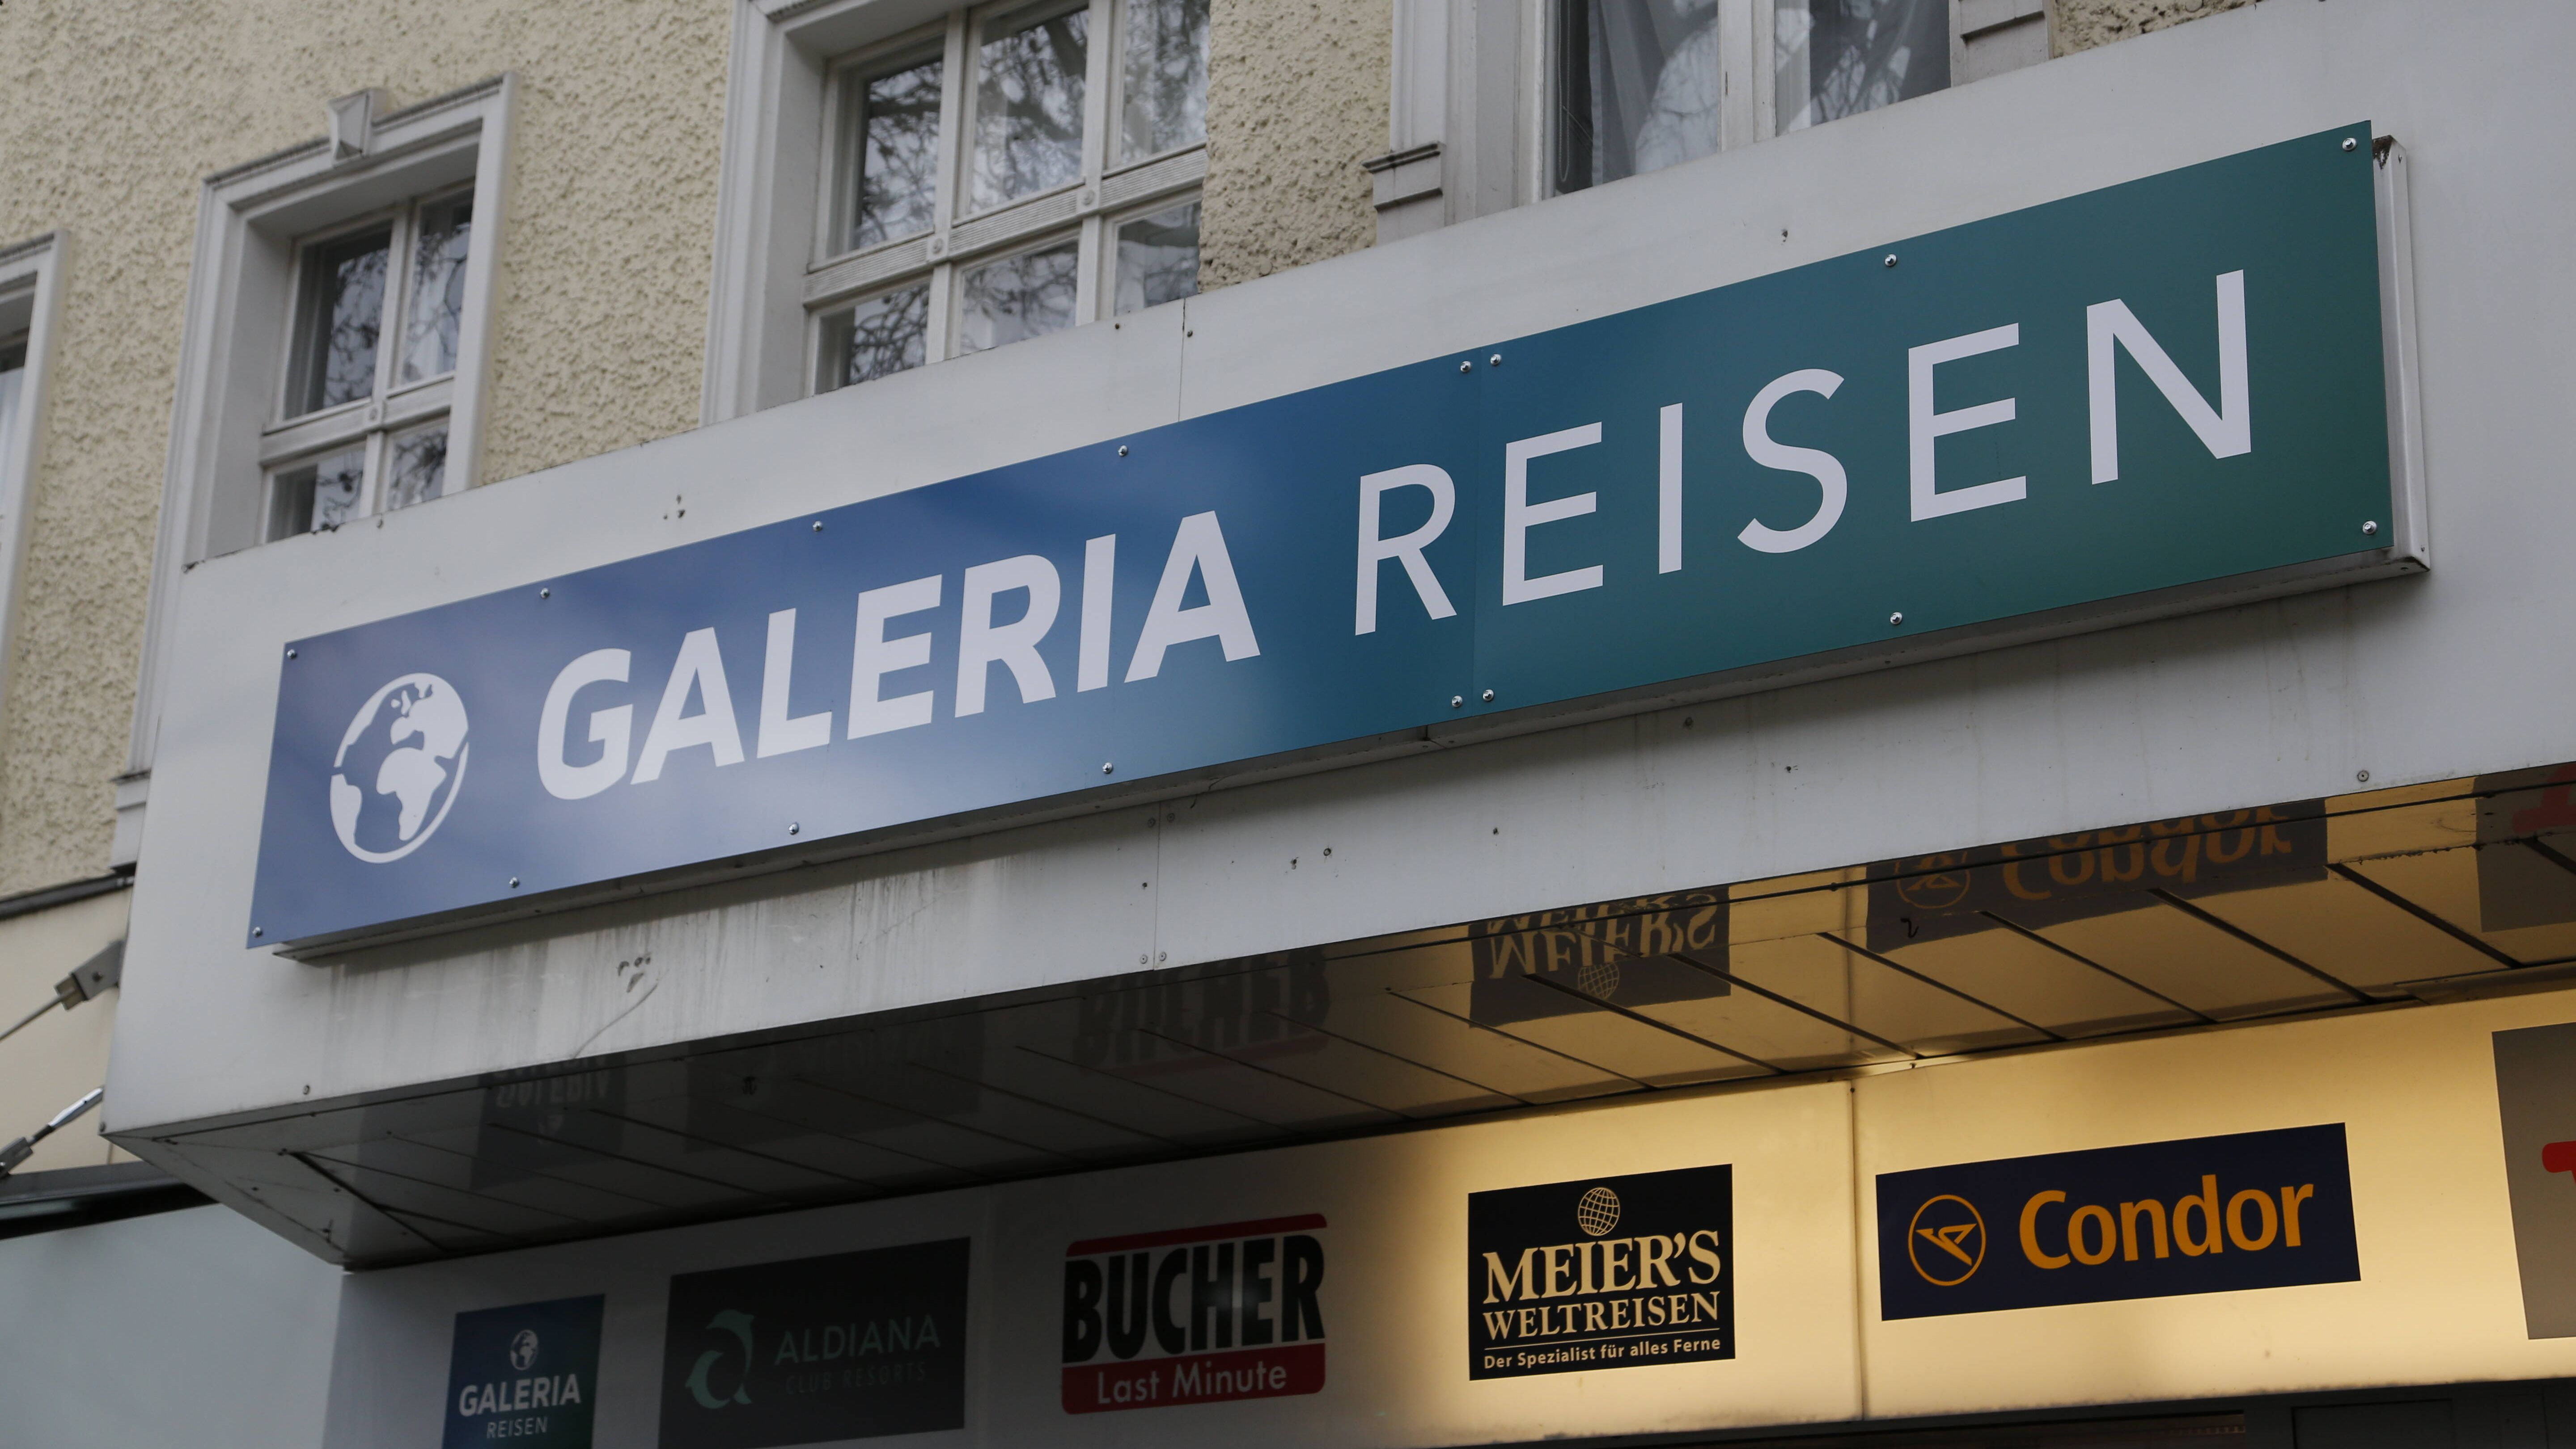 No future for Galeria Reisen: more than 100 travel agencies of department store chain Galeria Karstadt Kaufhof are facing closure soon.